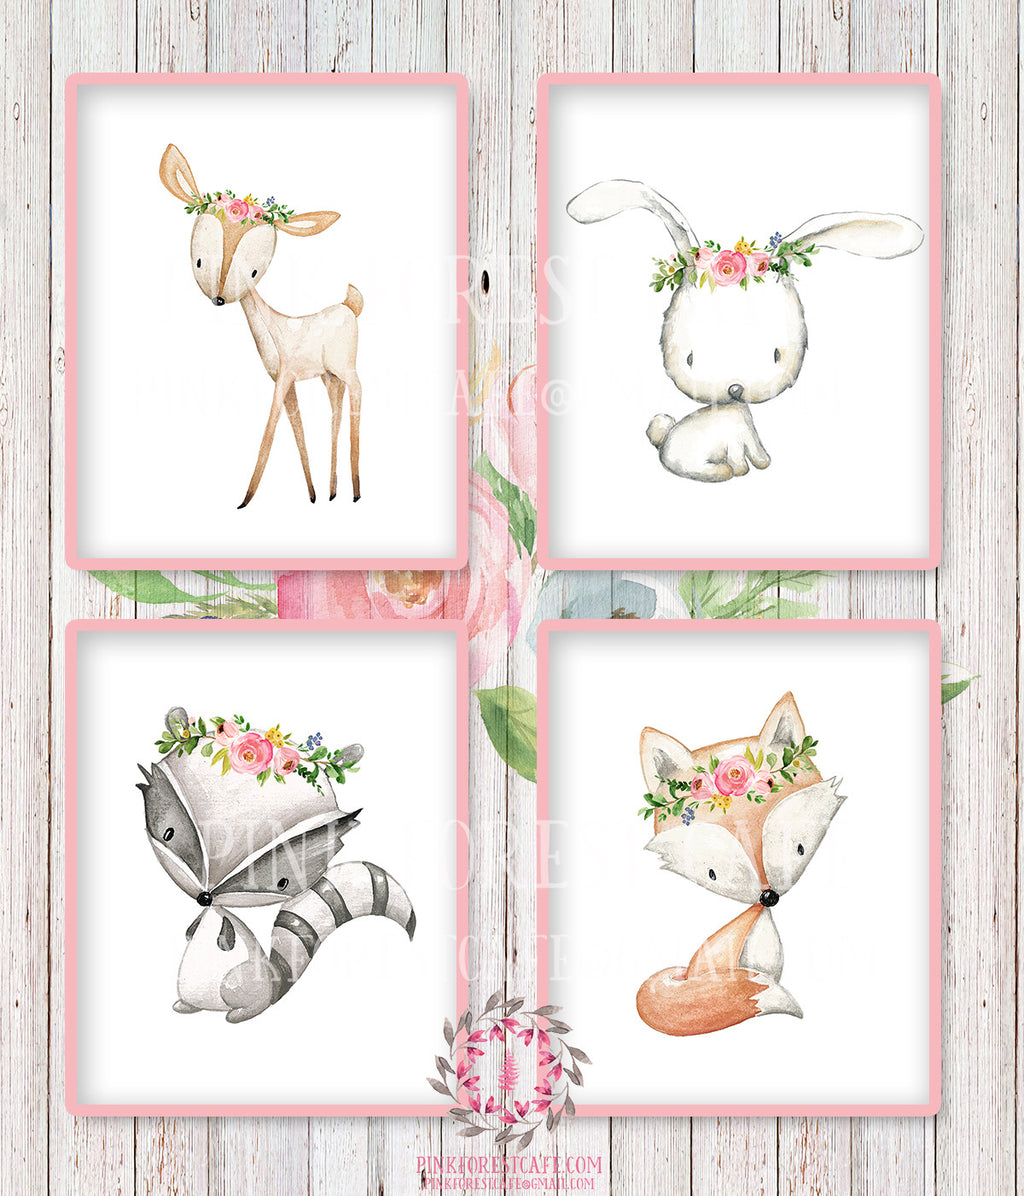 SALE 4 Deer Fox Bunny Rabbit Raccoon Wall Art Print Woodland Boho Bohemian Floral Nursery Baby Girl Room Set Lot Prints Printable Home Decor